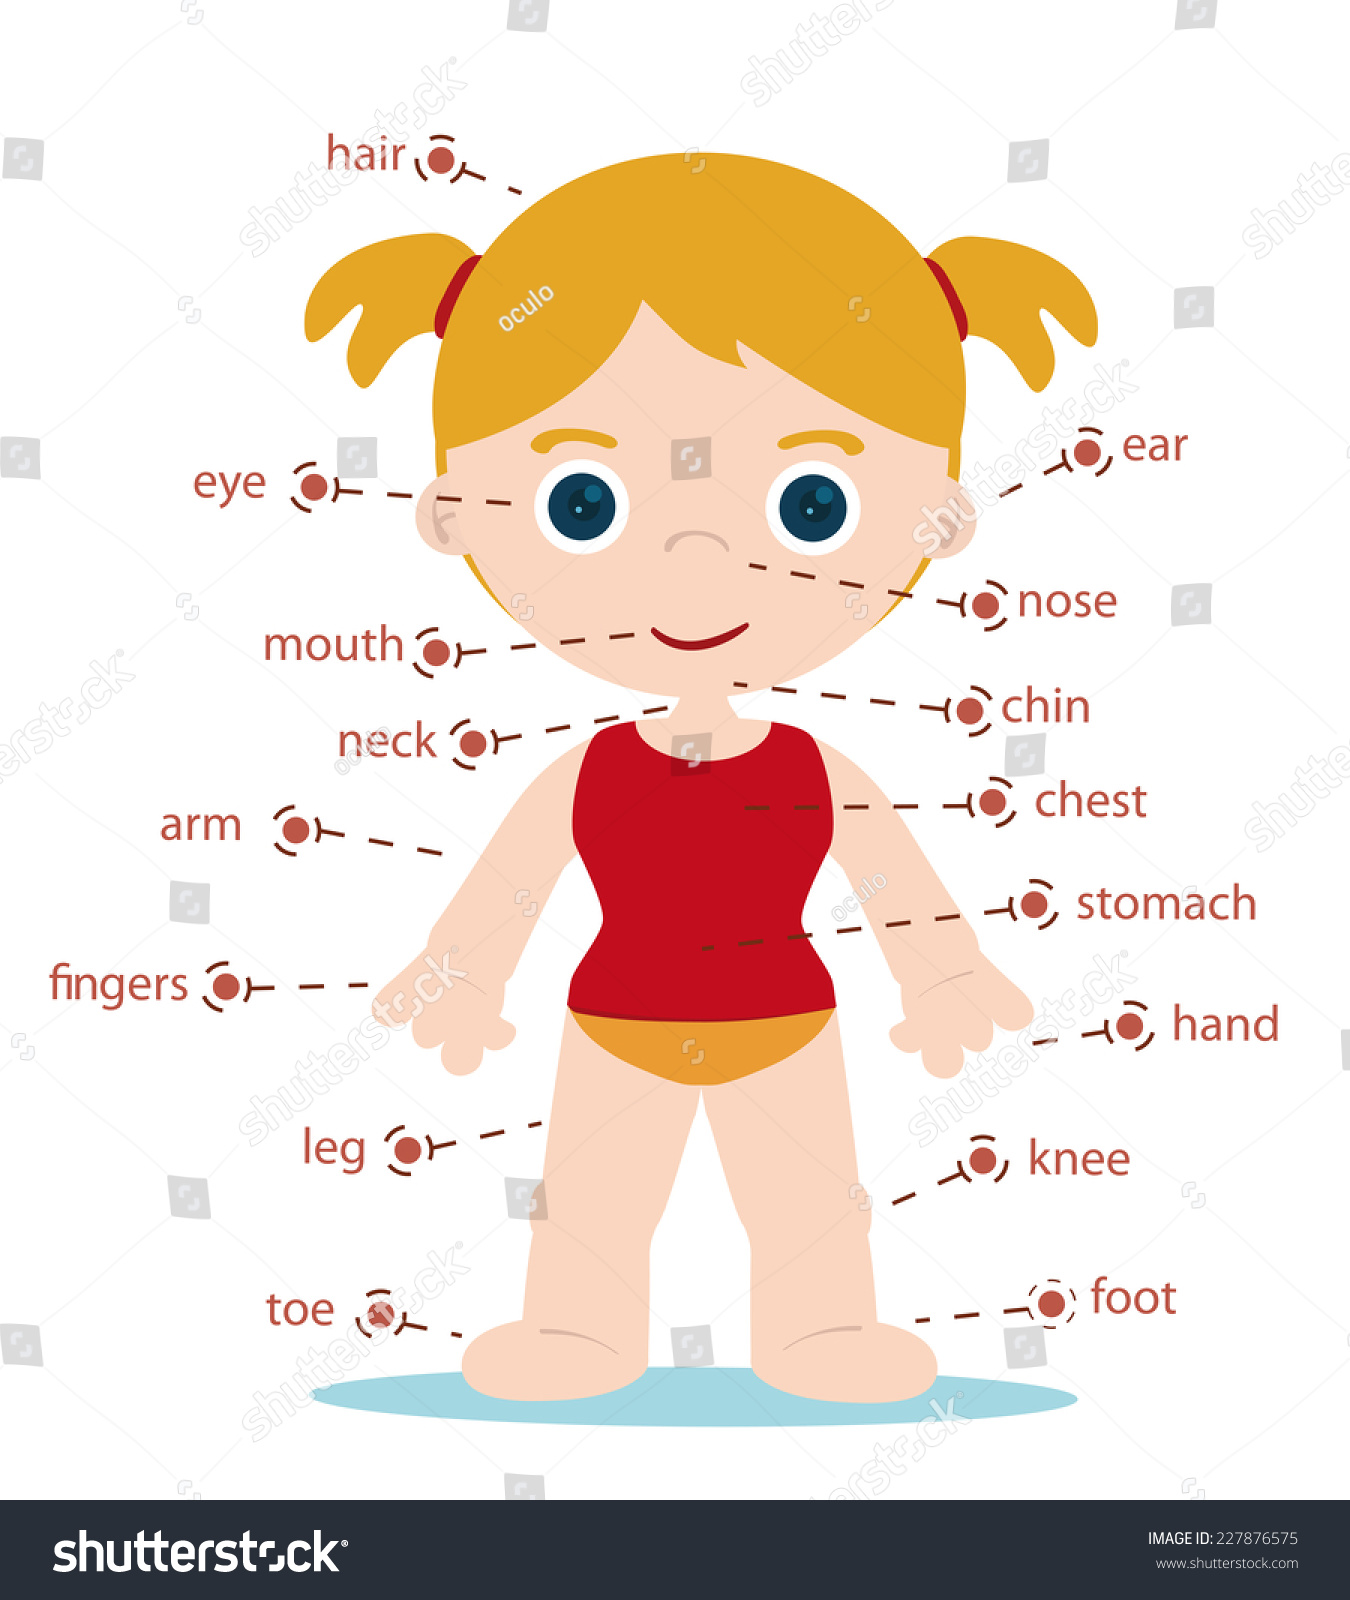 Free Worksheets music worksheets for preschoolers : Girl Body Parts Chart For School Stock Vector Illustration ...